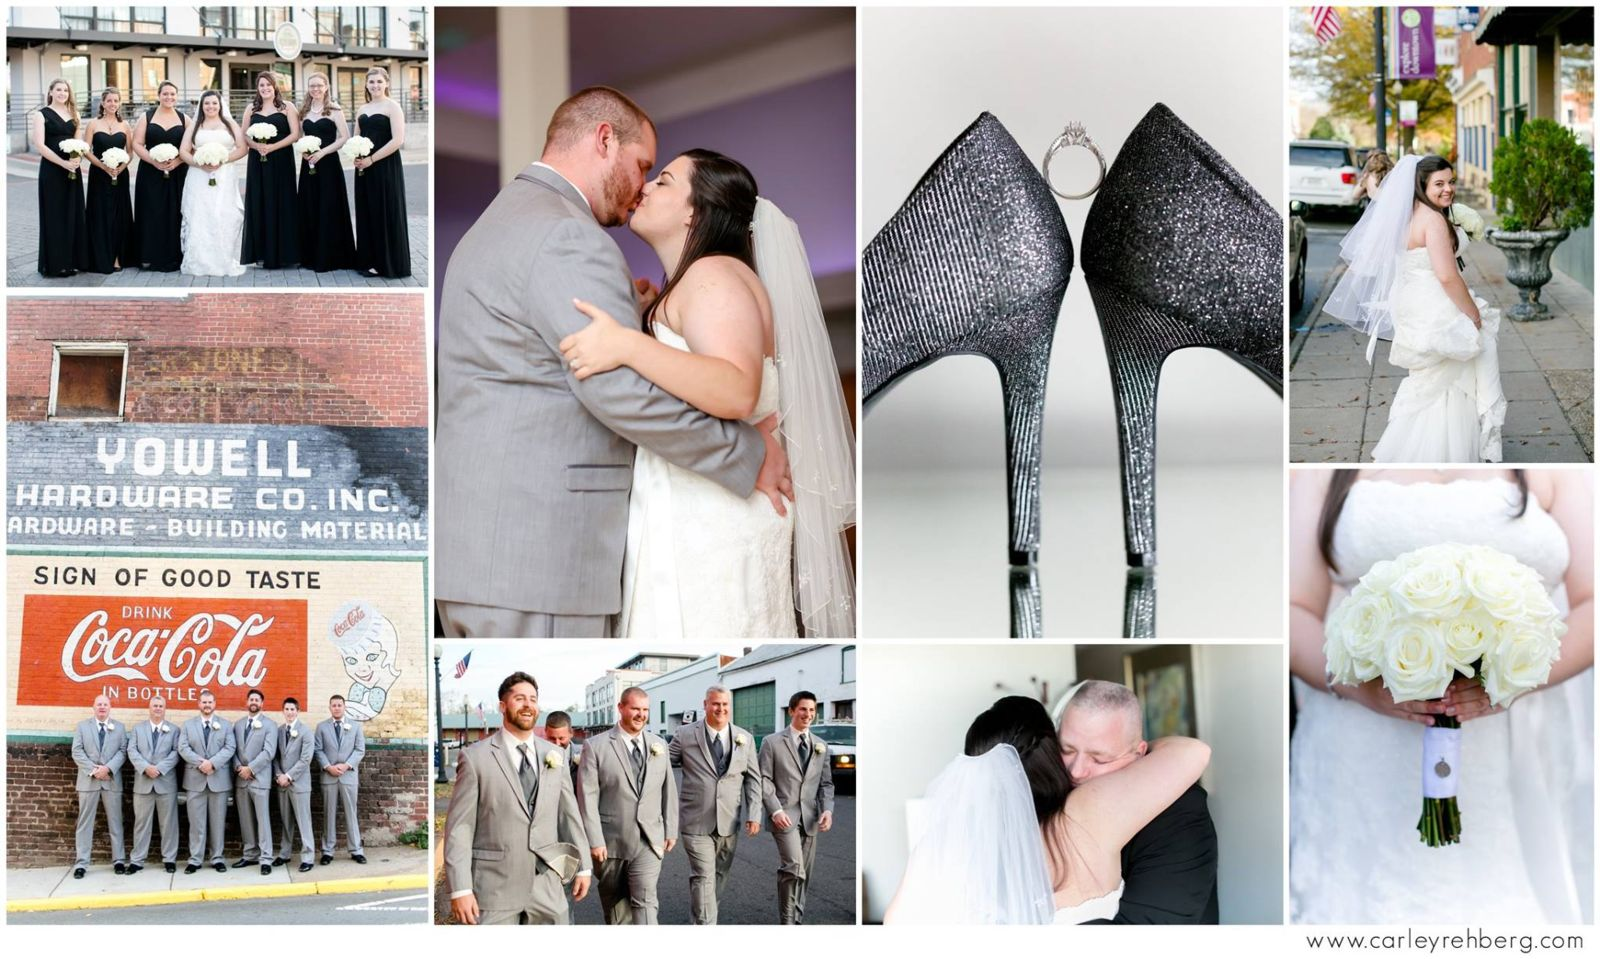 A collage of wedding photos, featuring photos of the bride and groom